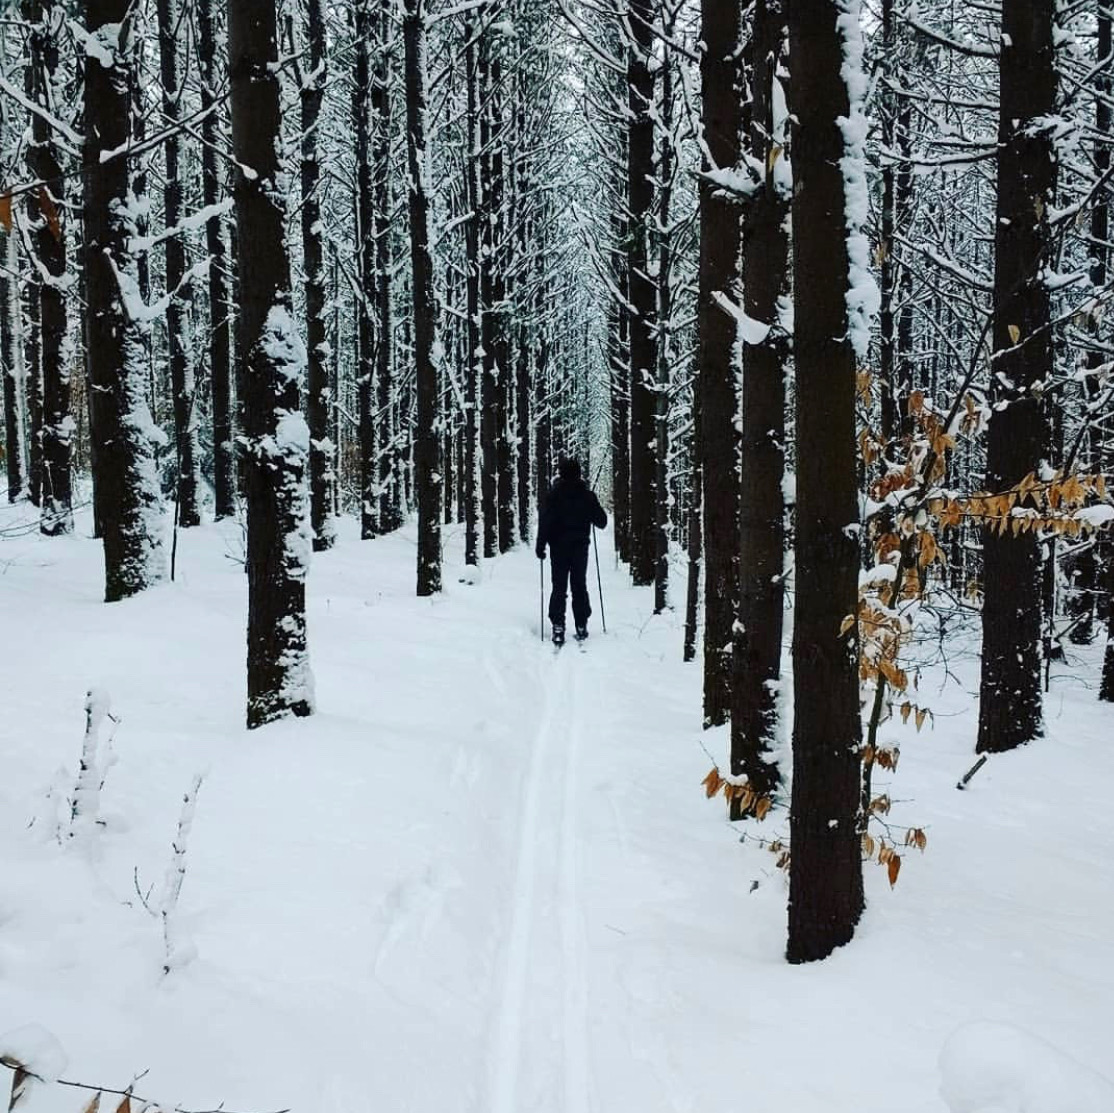 lake-of-the-woods-cross-country-skiing-4.jpeg